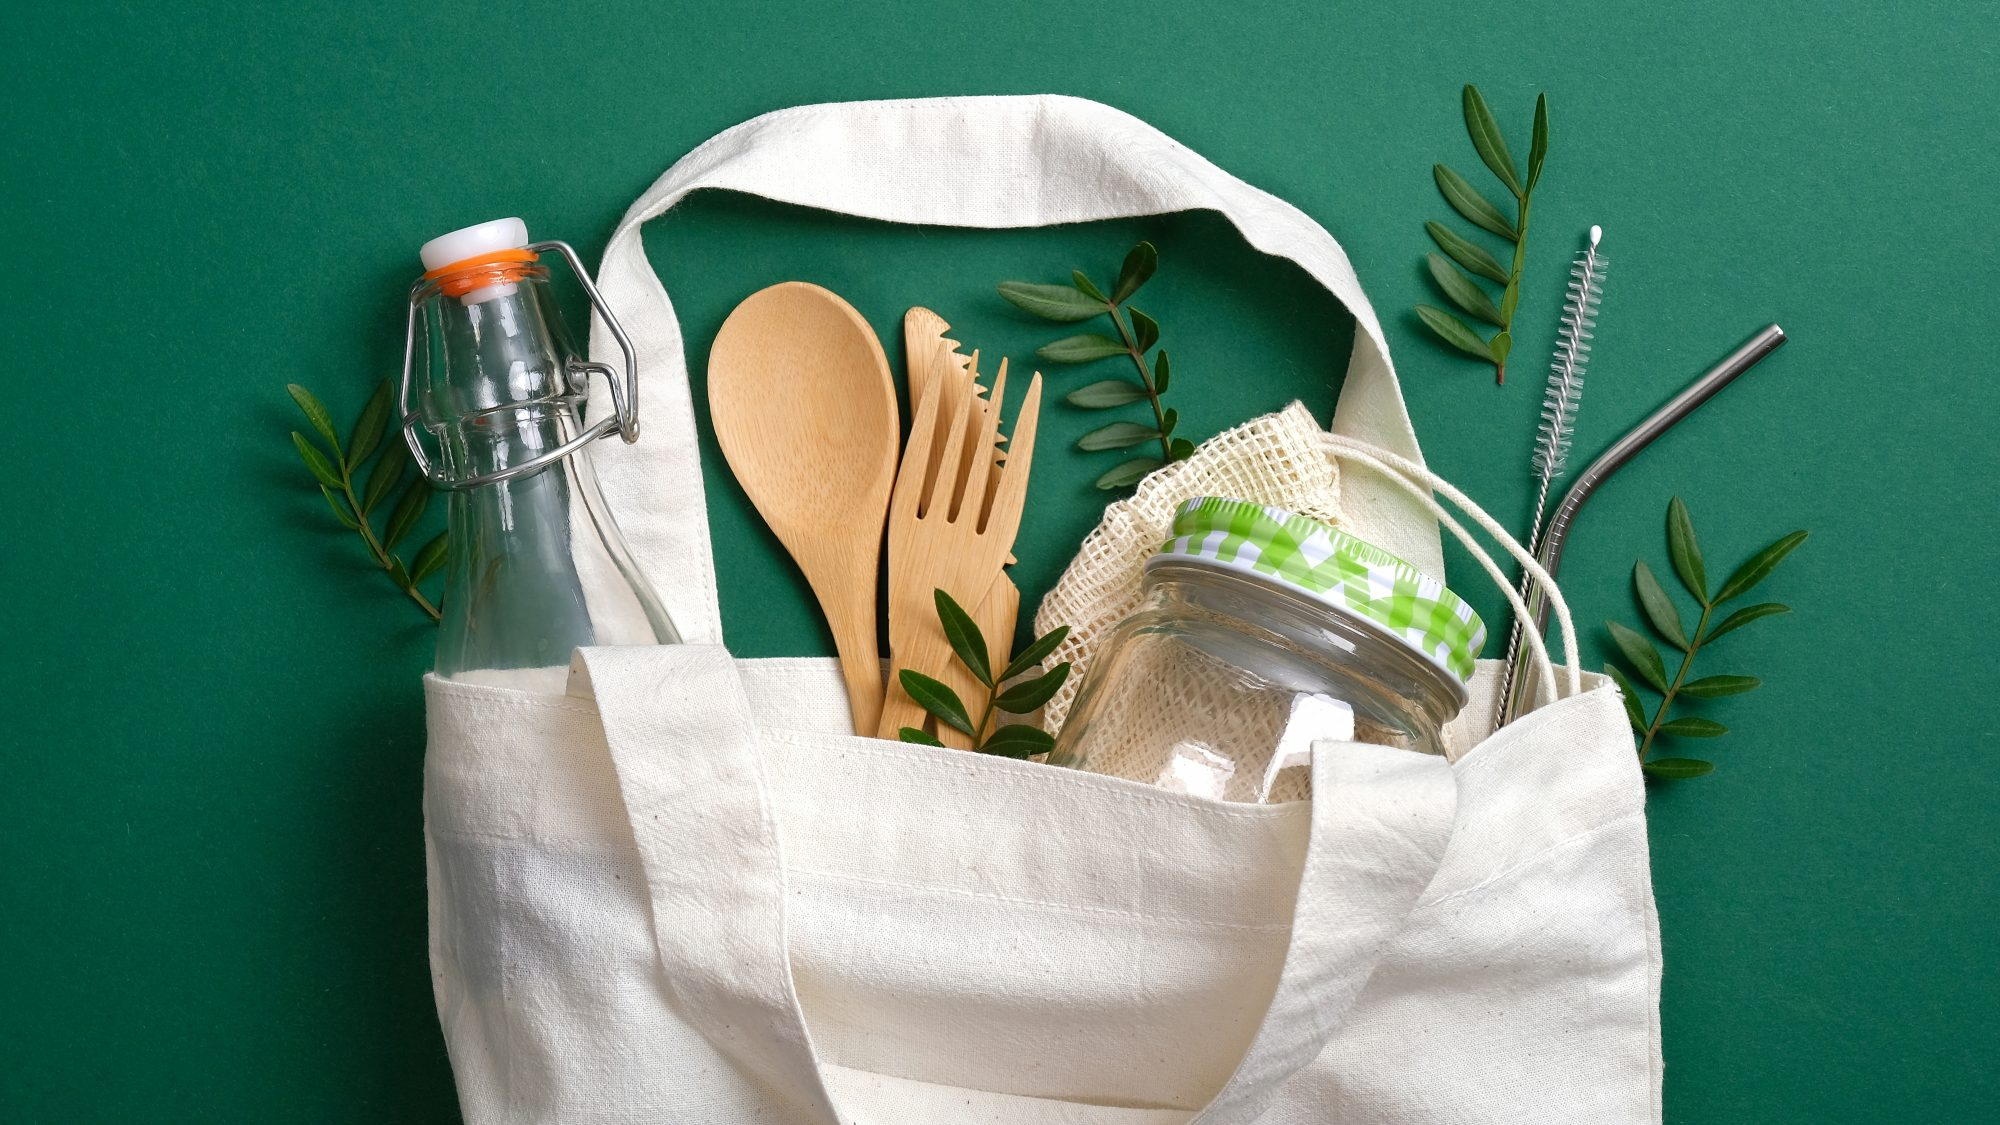 How to Clean Reusable Grocery Bags, cotton bag with groceries